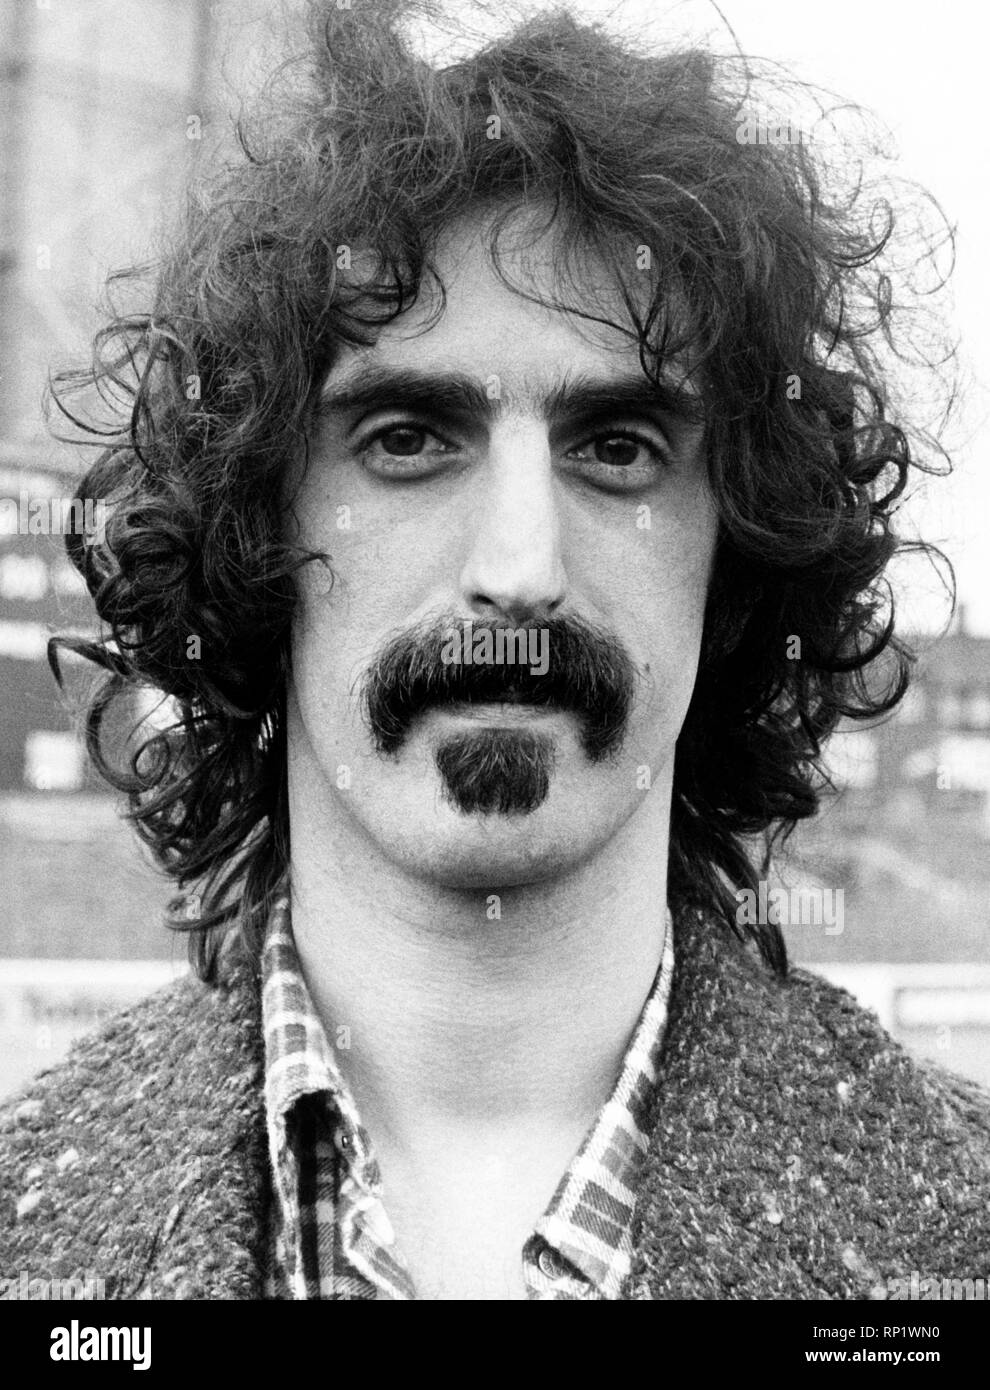 Frank Zappa Stock Photos Amp Frank Zappa Stock Images Alamy